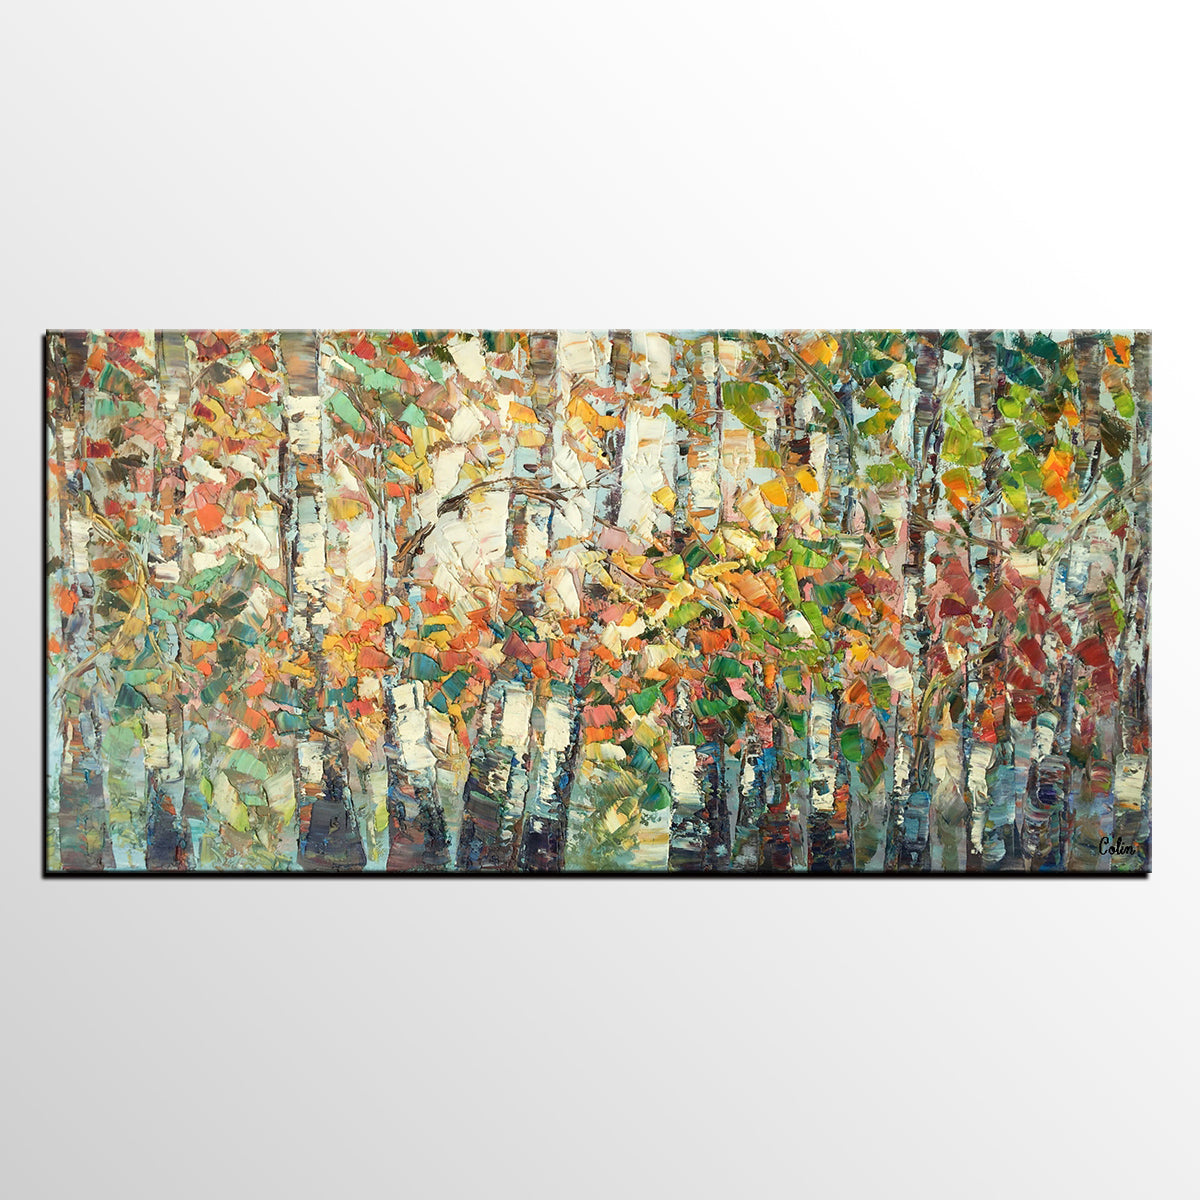 Landscape Painting, Autumn Birch Tree Painting, Large Wall Art, Oil Painting, Abstract Painting, Canvas Painting